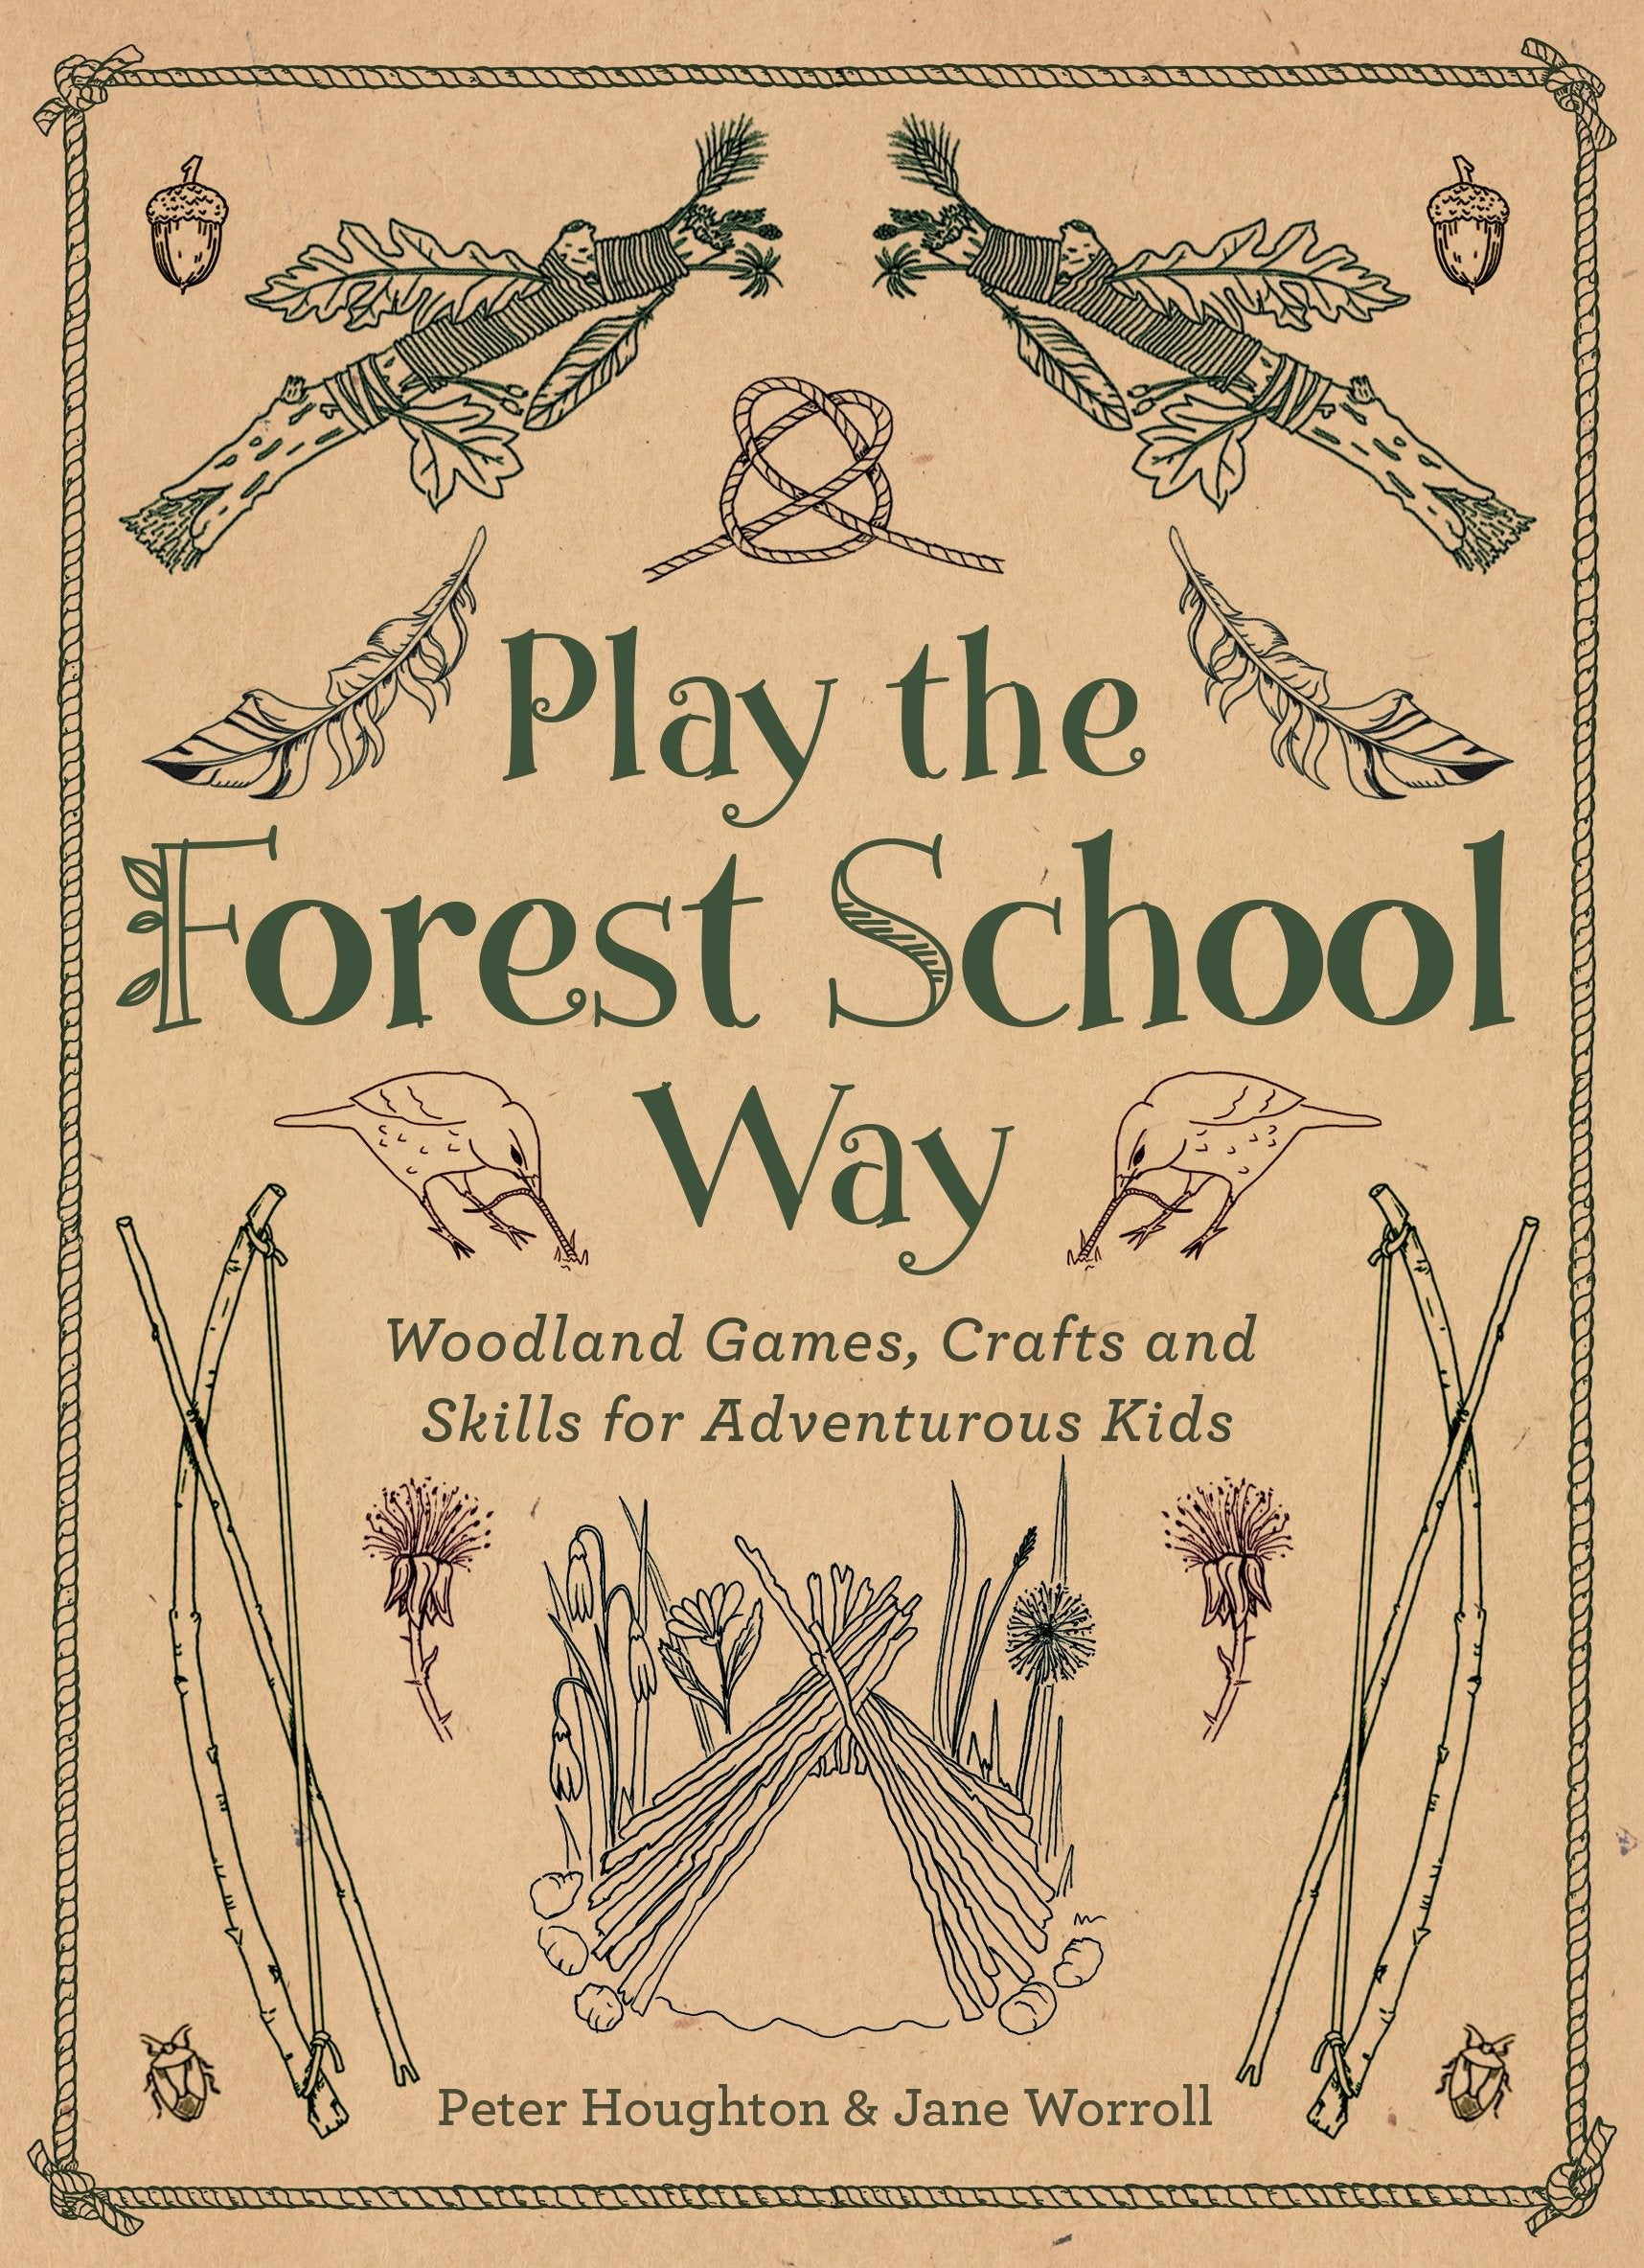 Forest School Way Book